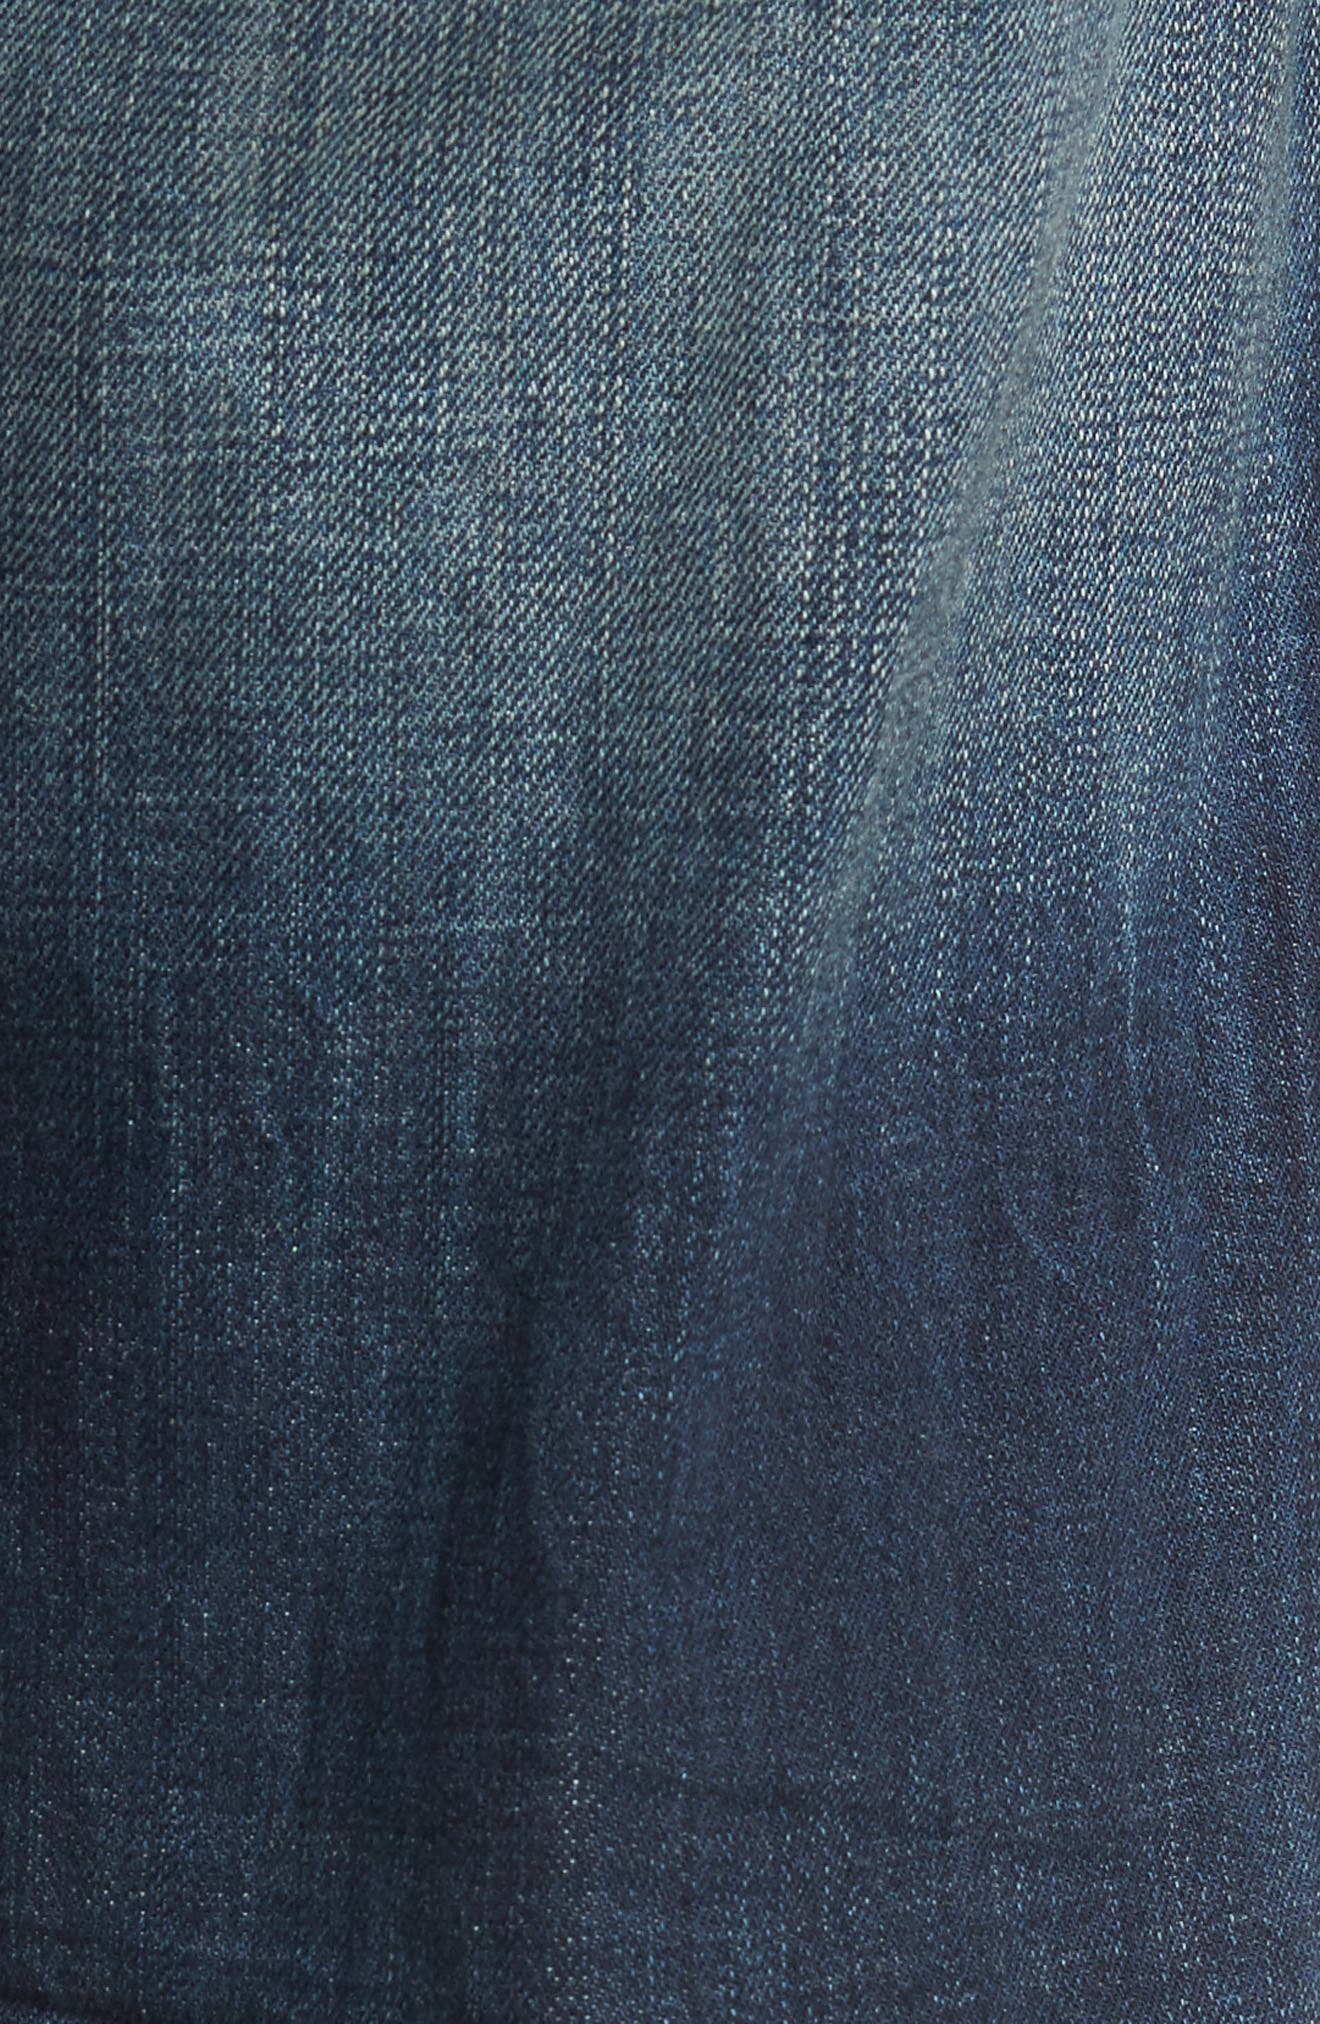 Geno Straight Leg Jeans,                             Alternate thumbnail 5, color,                             Mended Center Stage